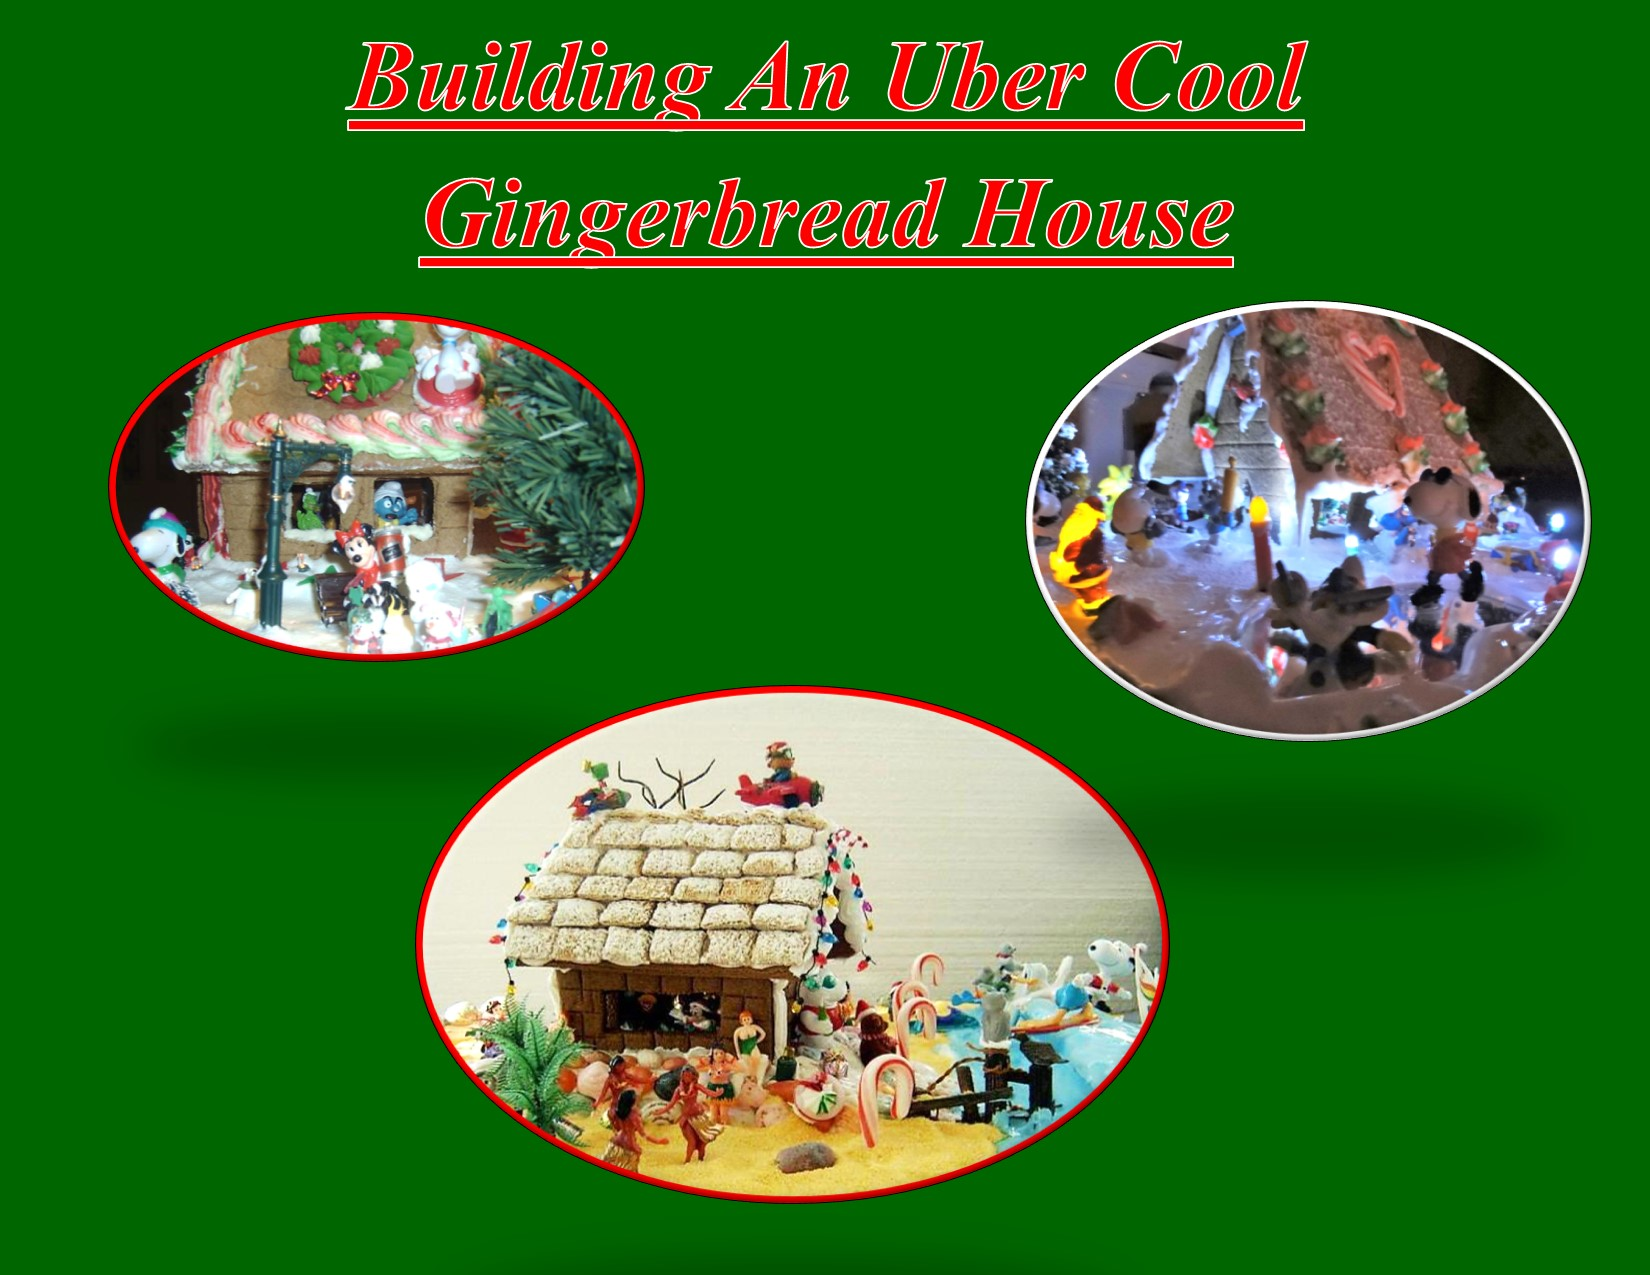 Uber Cool Gingerbread Houses with Chef Michael Niksic